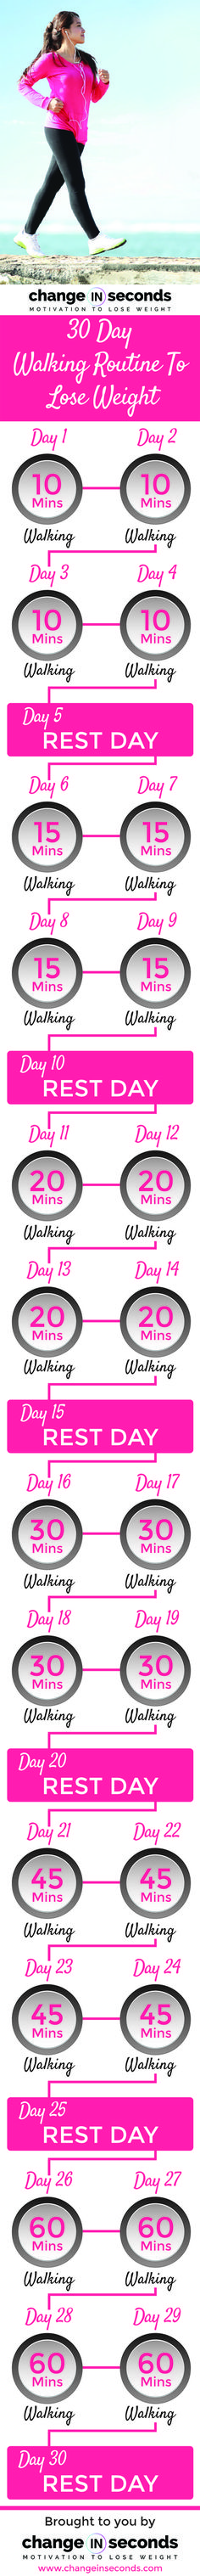 30 Day Walking Routine To Lose Weight (Download PDF)